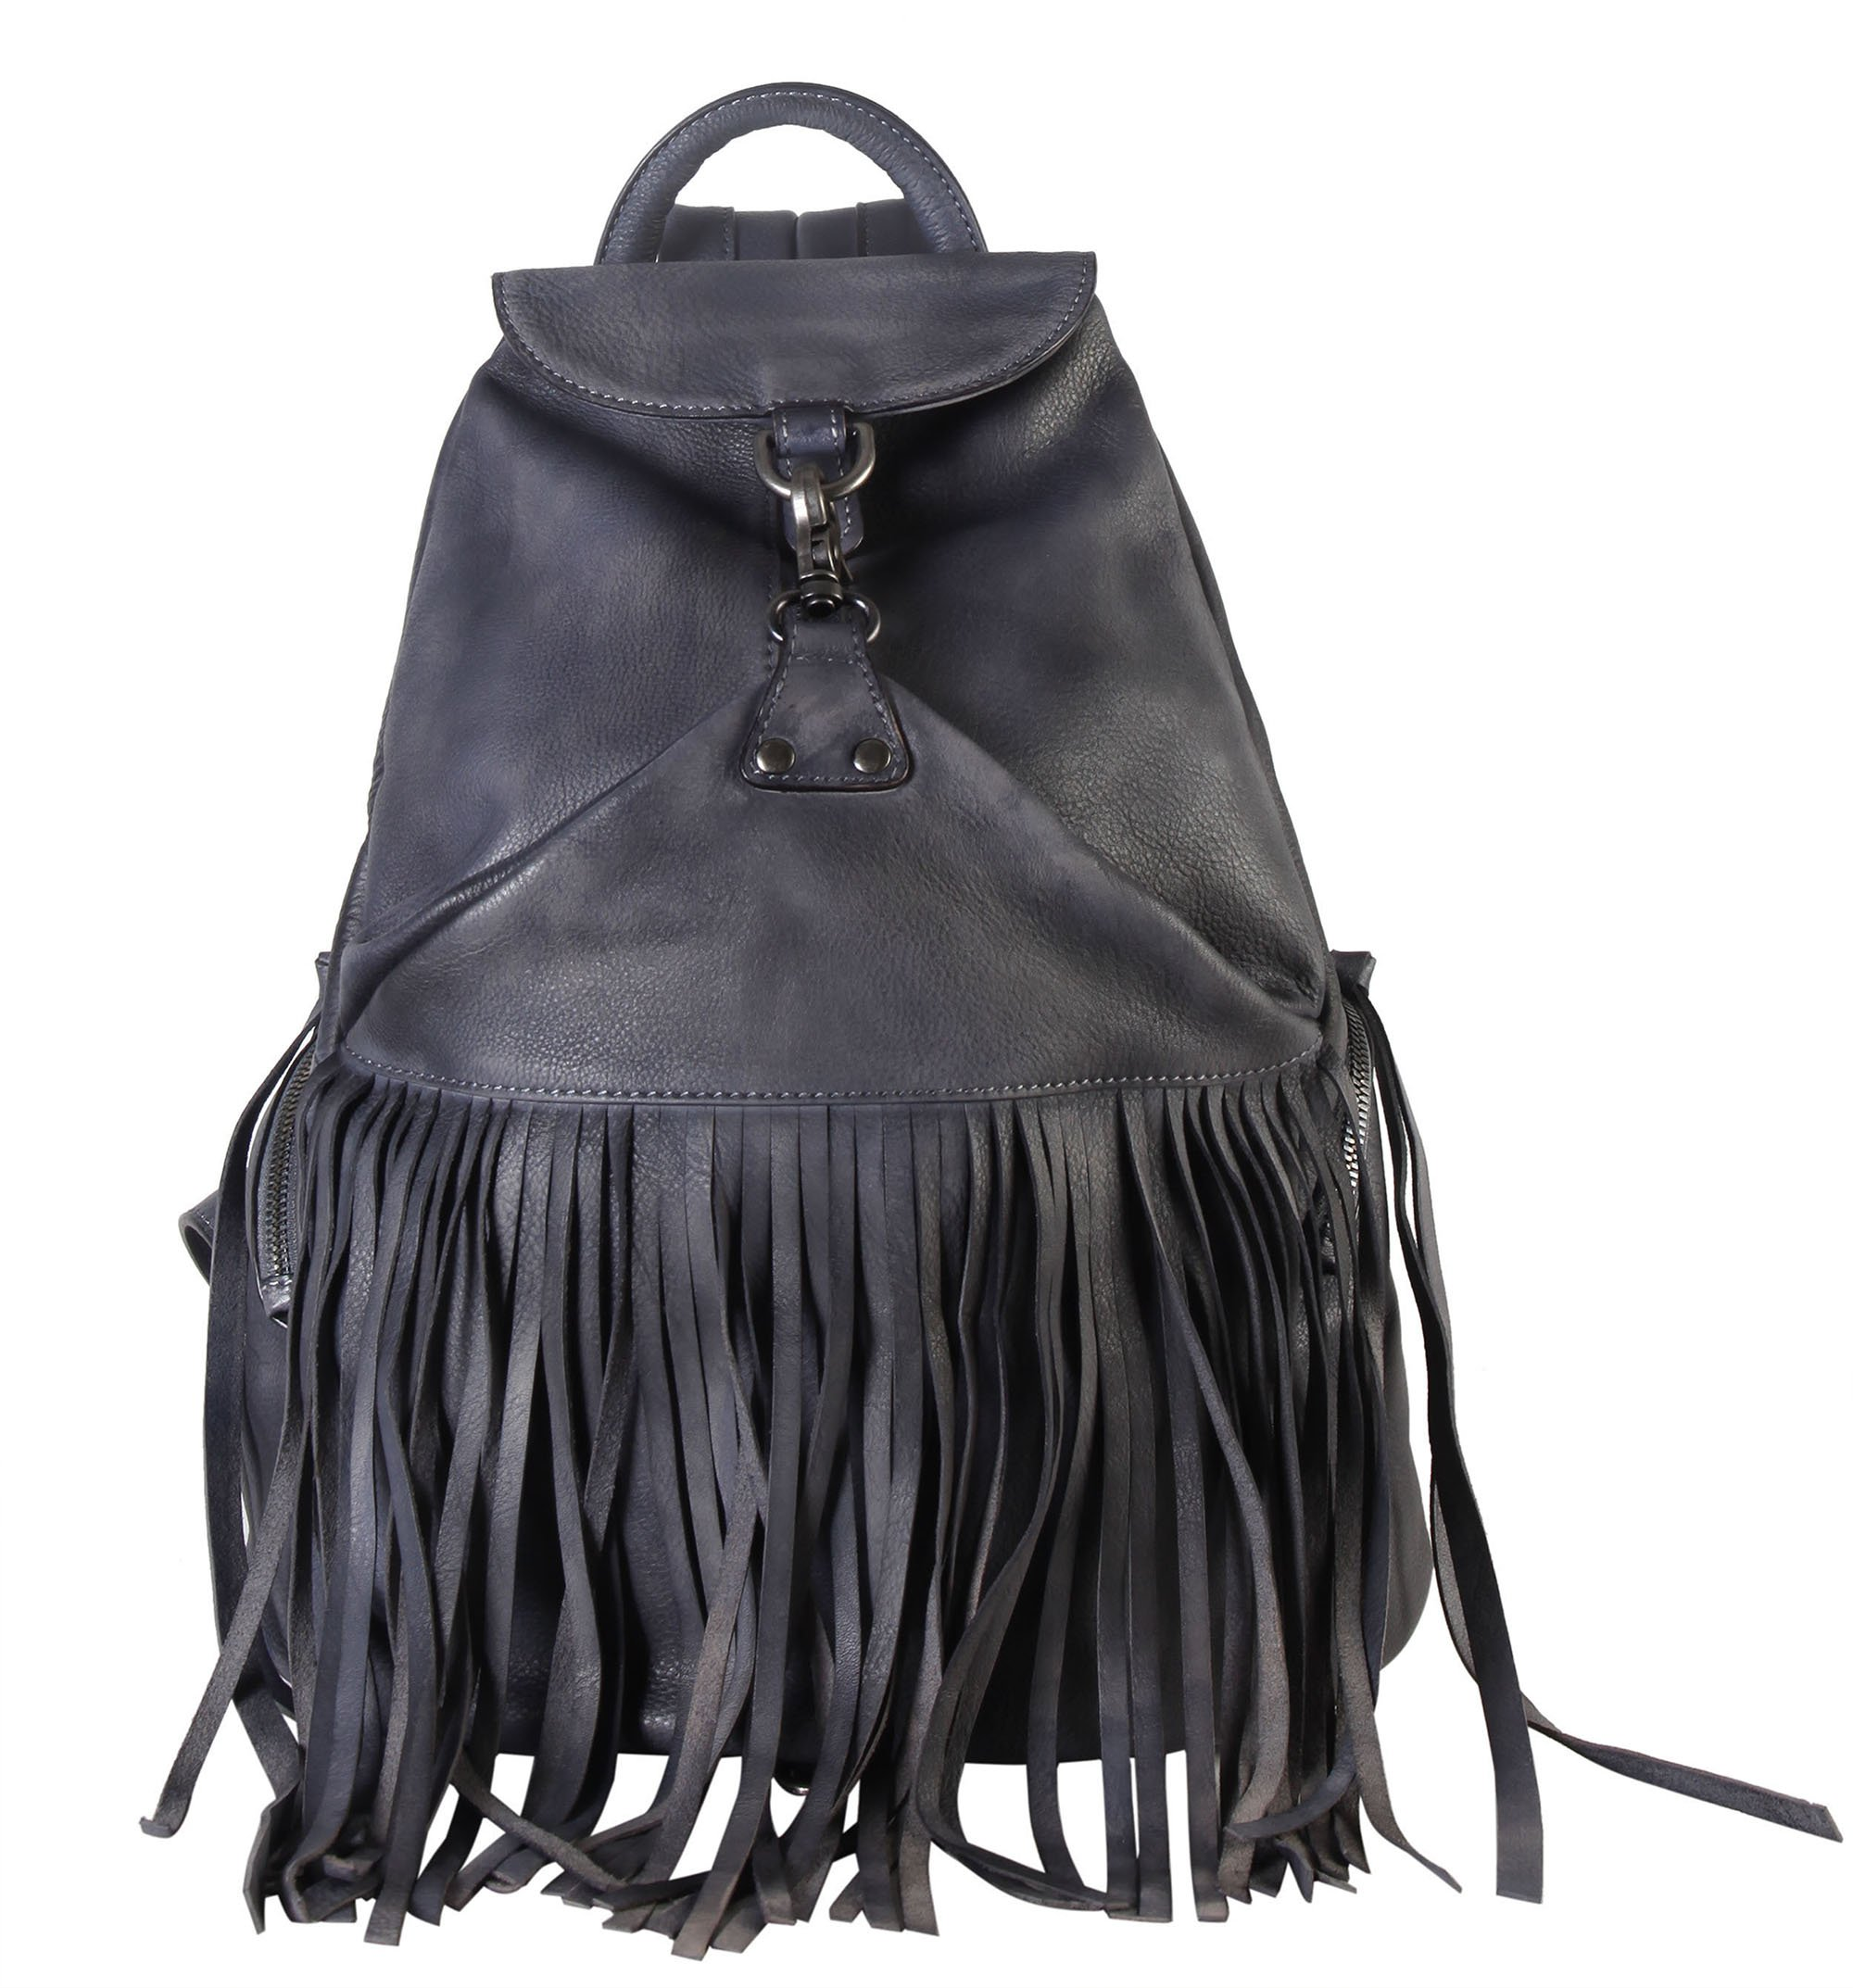 Diophy Genuine Leather Fringe Style Back Pack Womens Purse Handbag Accented with Zippered Pockets on Both Side 150300 (Grey) by Diophy